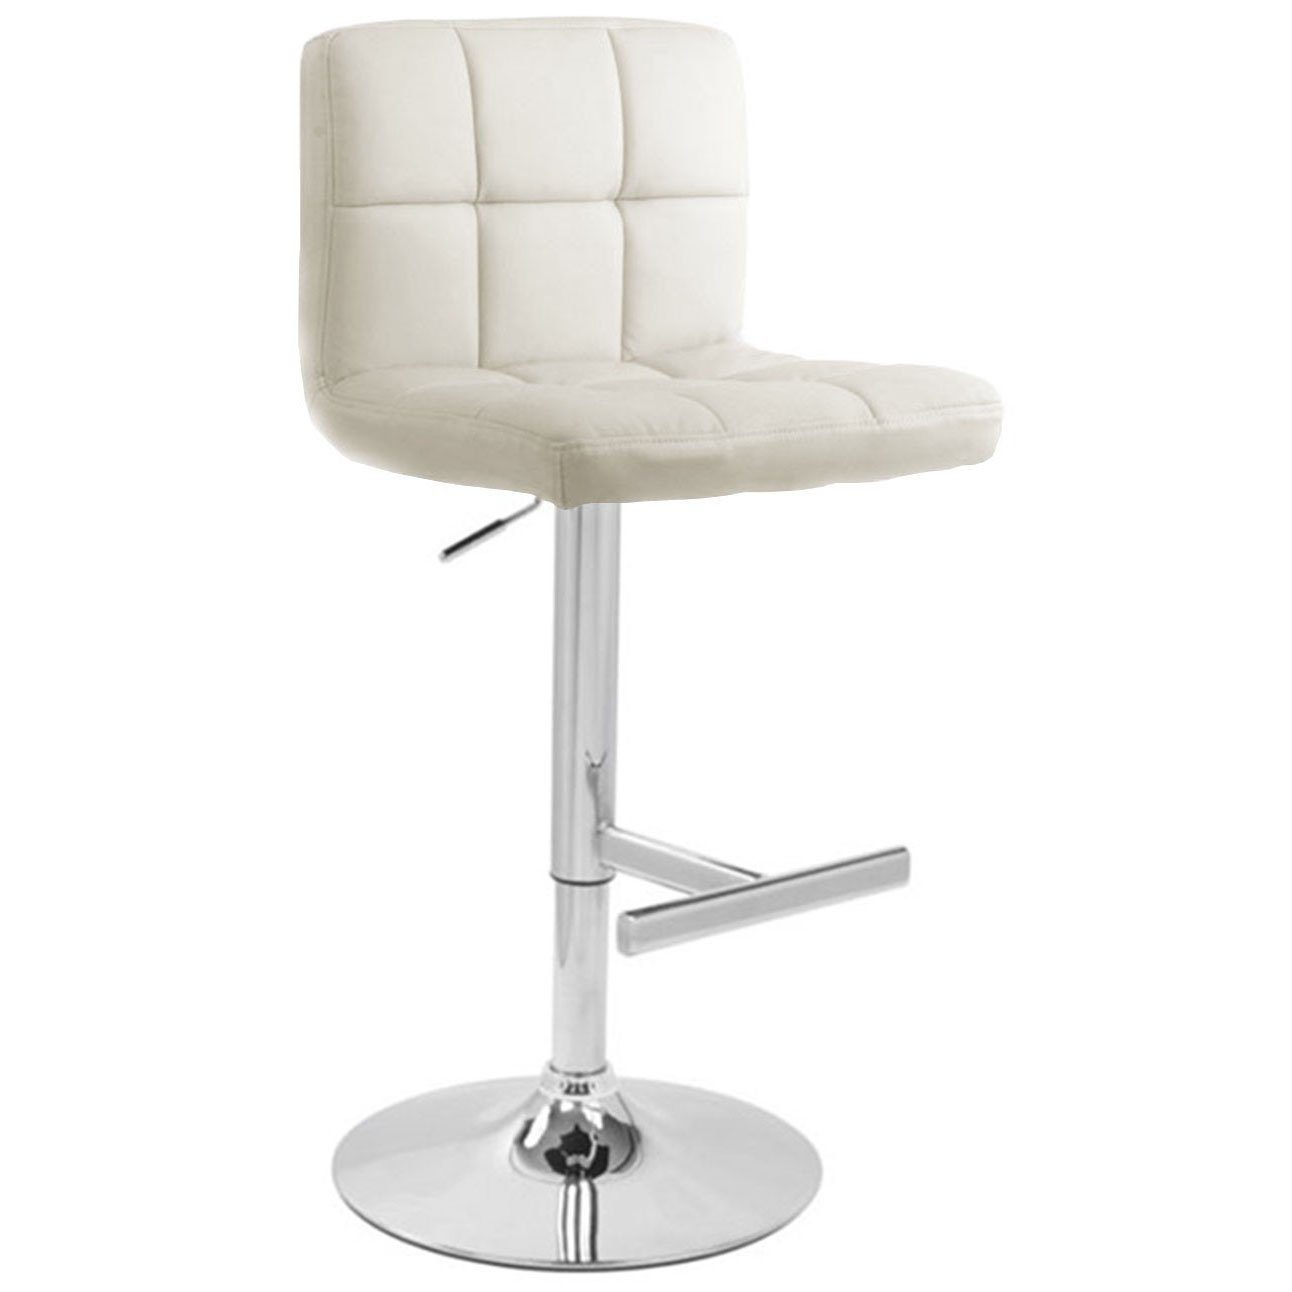 Allegro bar stool white size x 450mm x 540mm - Allegro bar stool ...